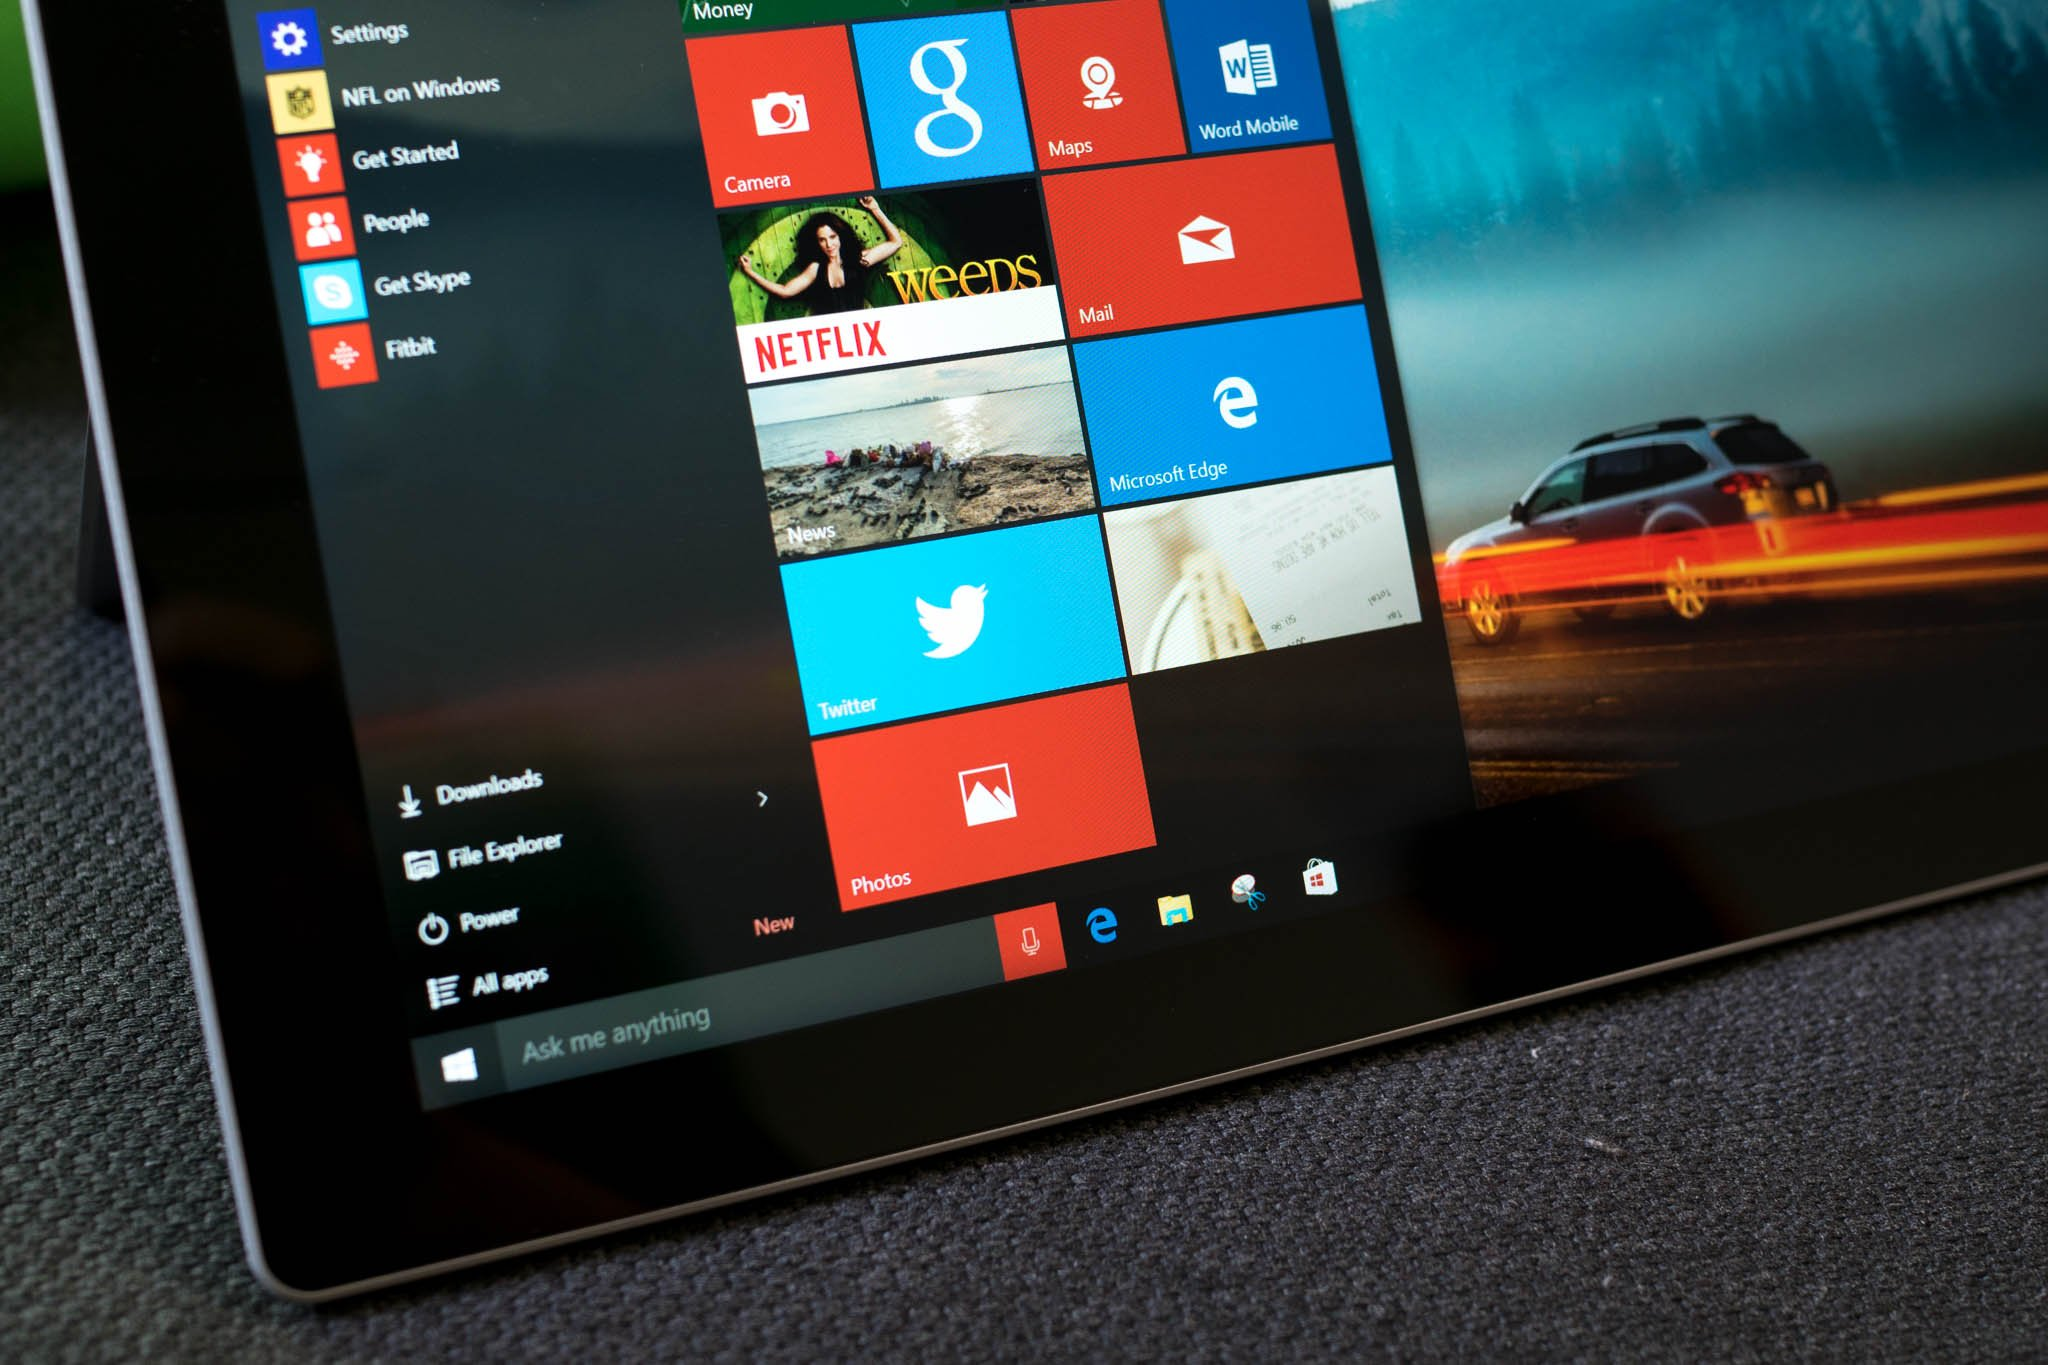 Windows 10 s redstone 2016 update rumored to add more